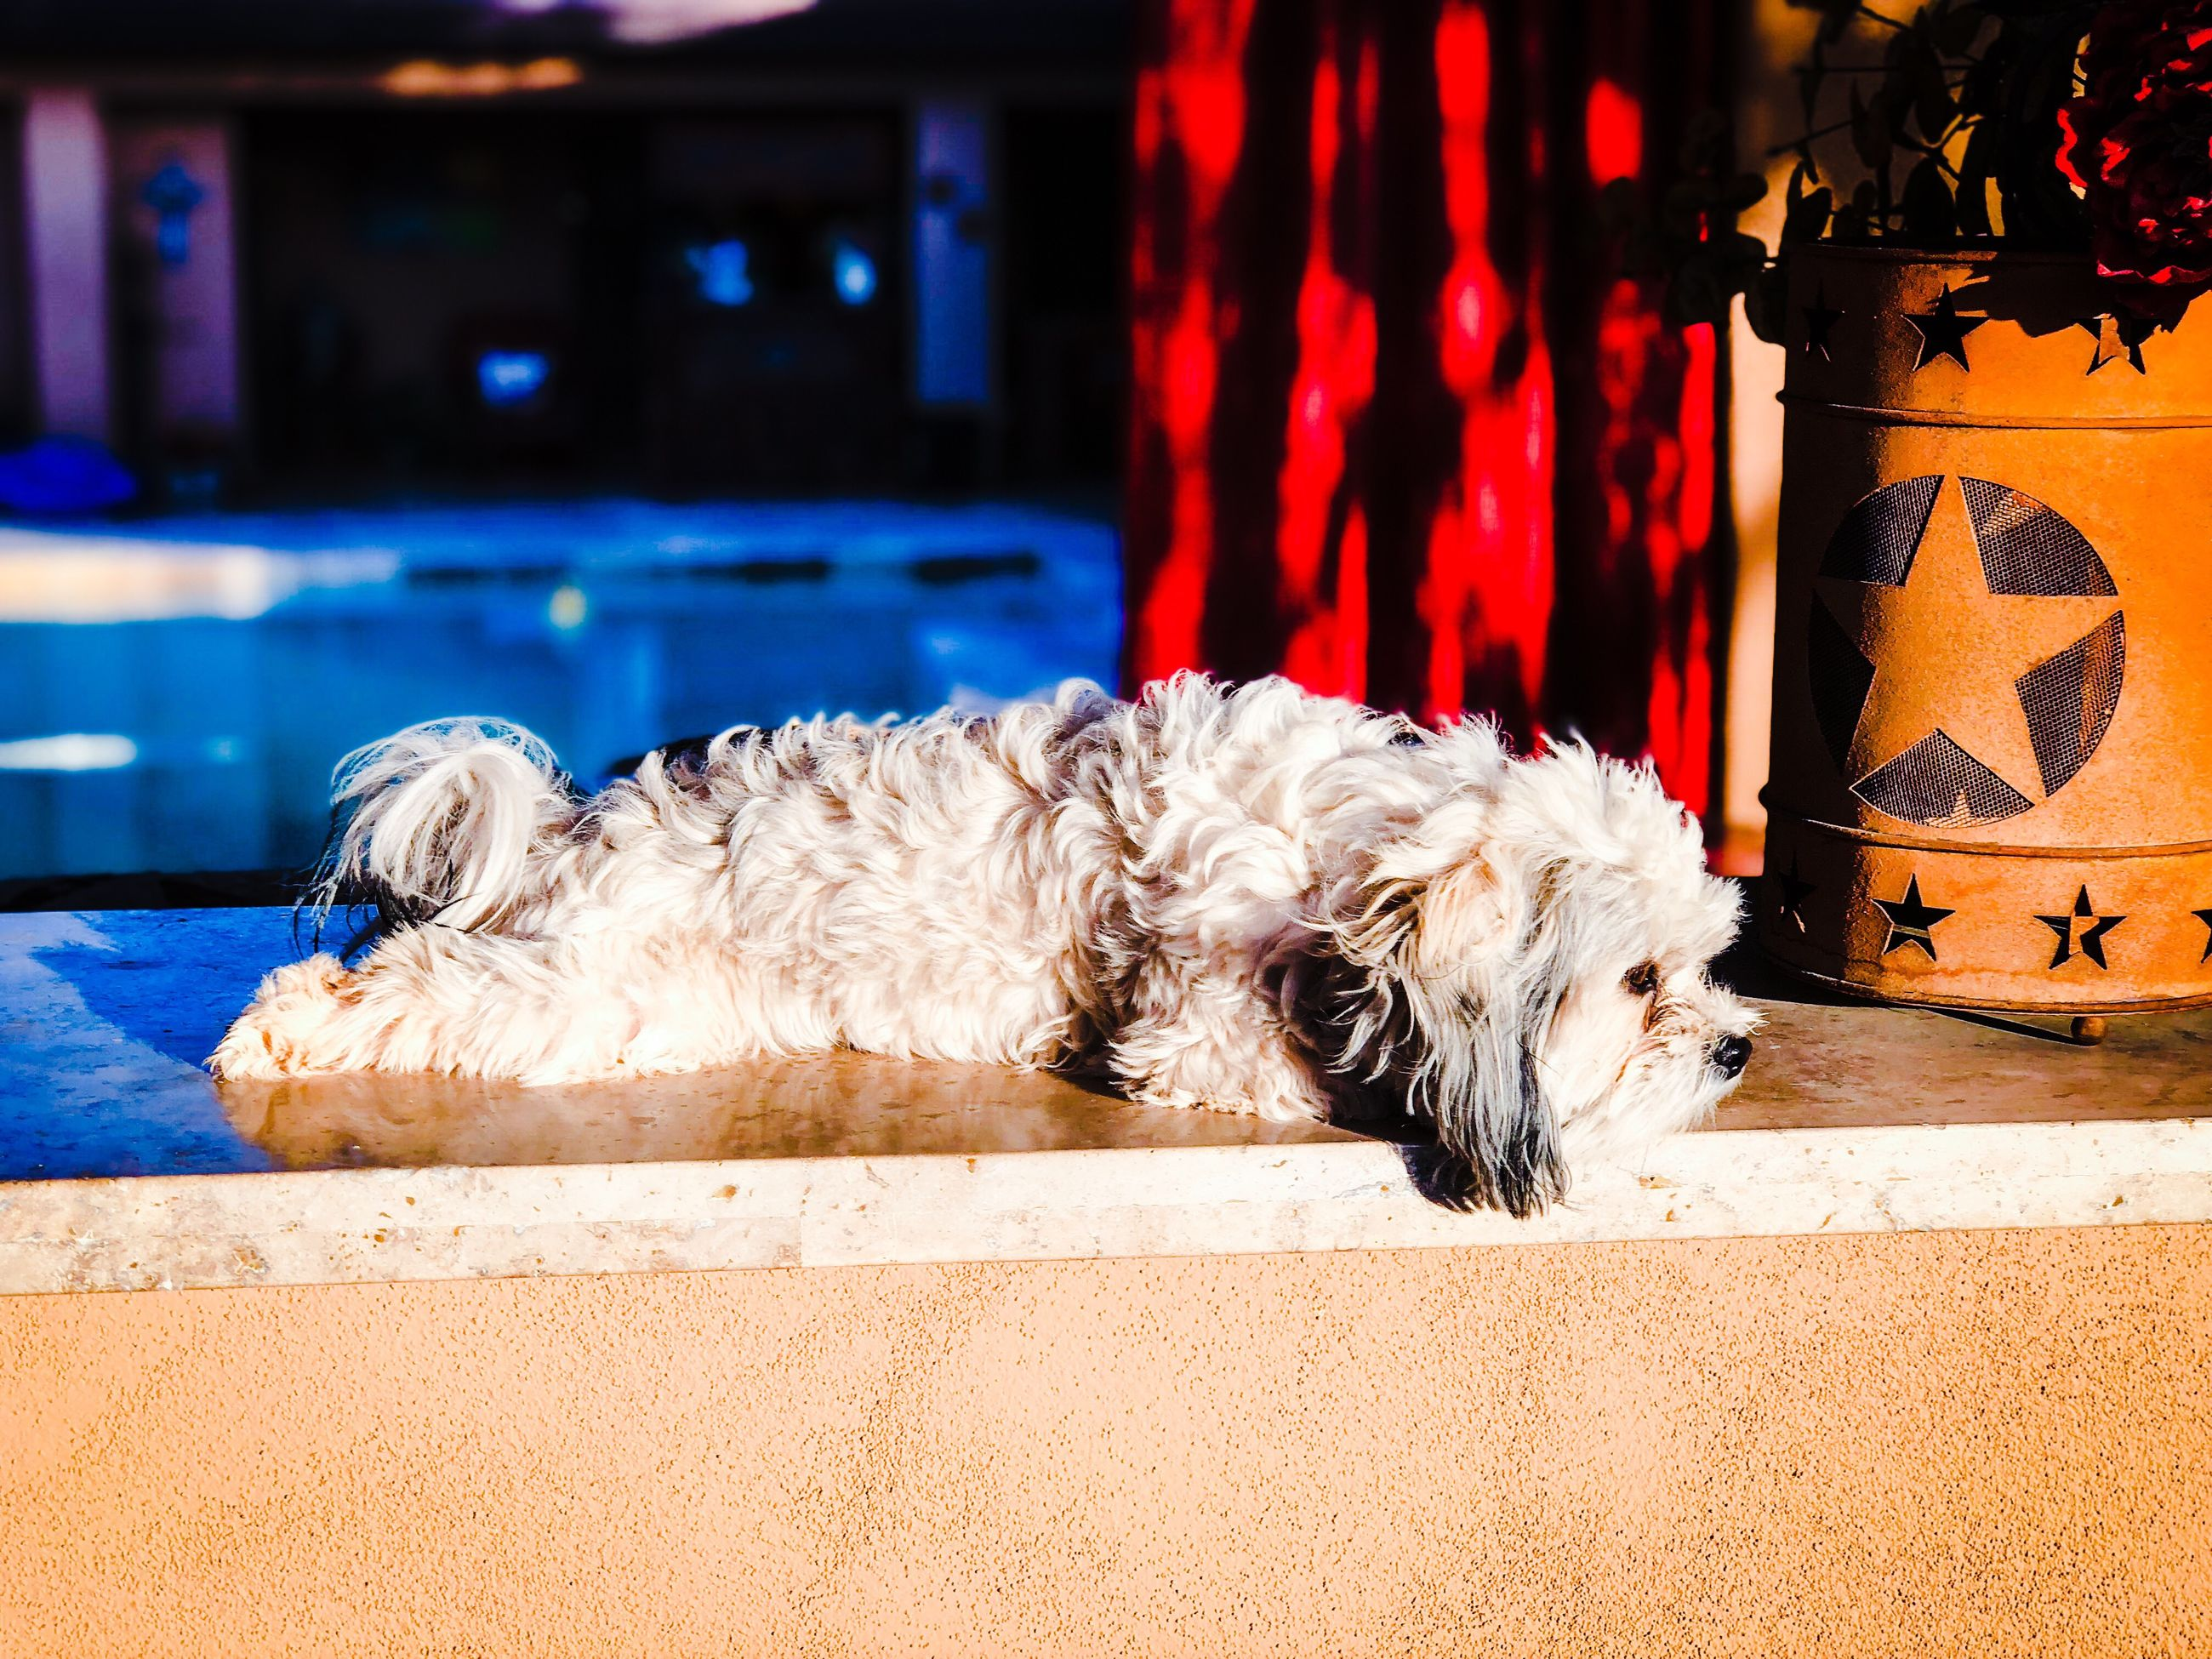 domestic, pets, mammal, domestic animals, one animal, canine, dog, animal themes, animal, animal hair, vertebrate, no people, relaxation, hair, focus on foreground, indoors, resting, sleeping, carpet - decor, lying down, animal head, small